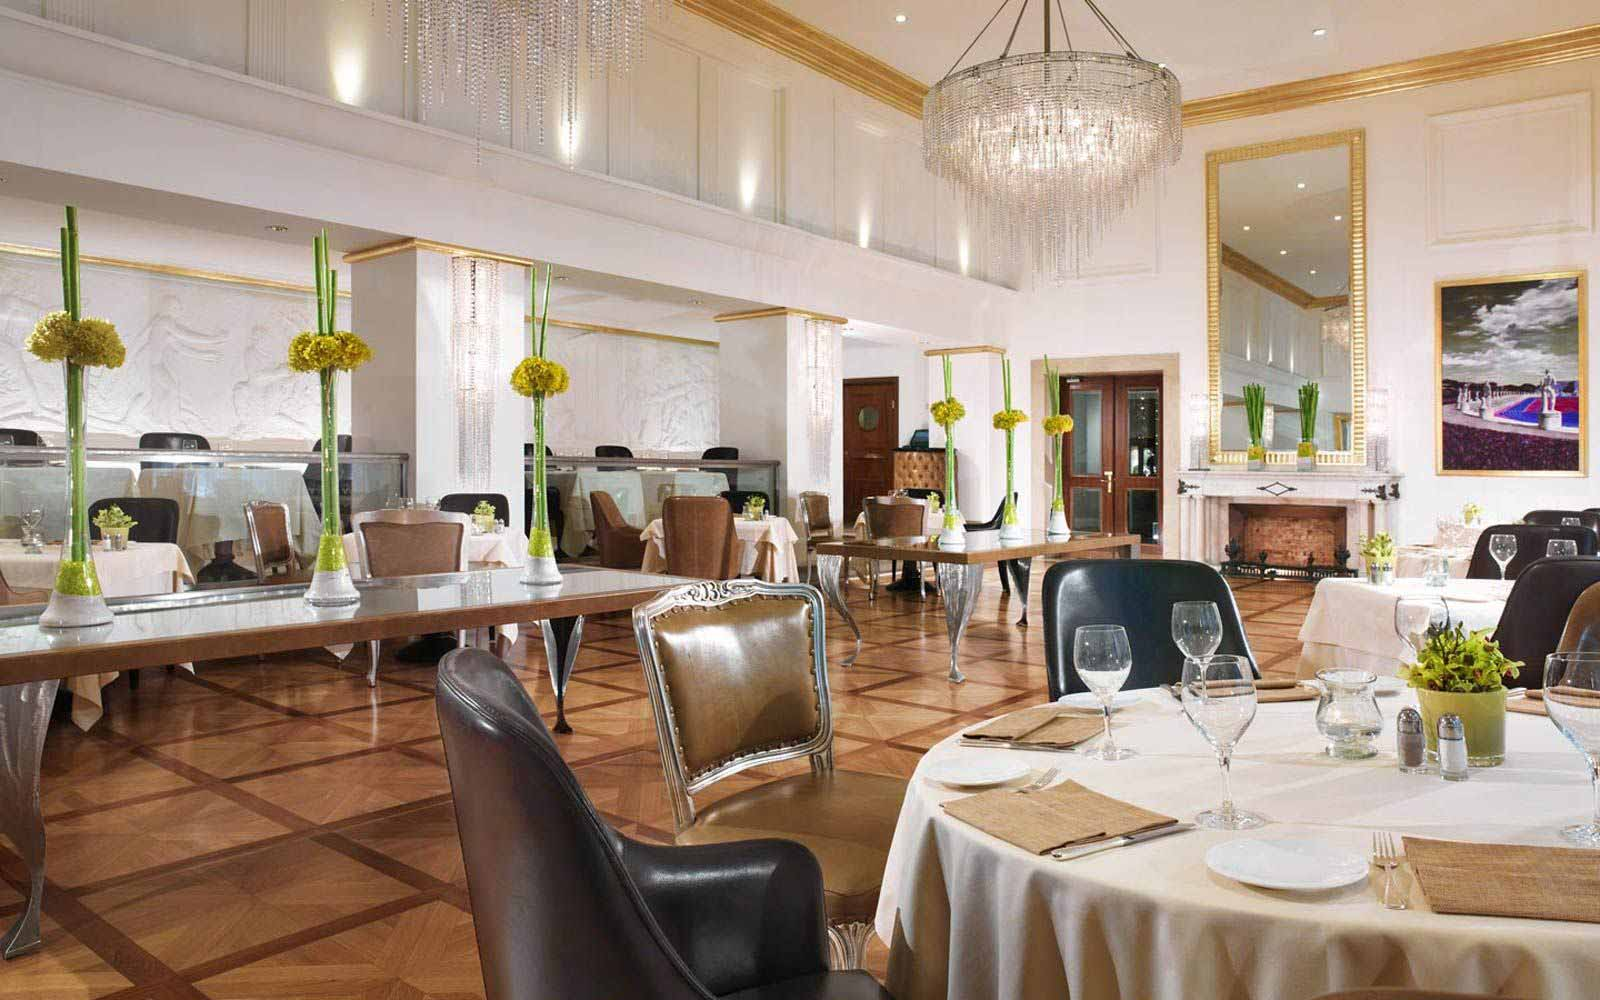 The Doney Restaurant at The Westin Excelsior